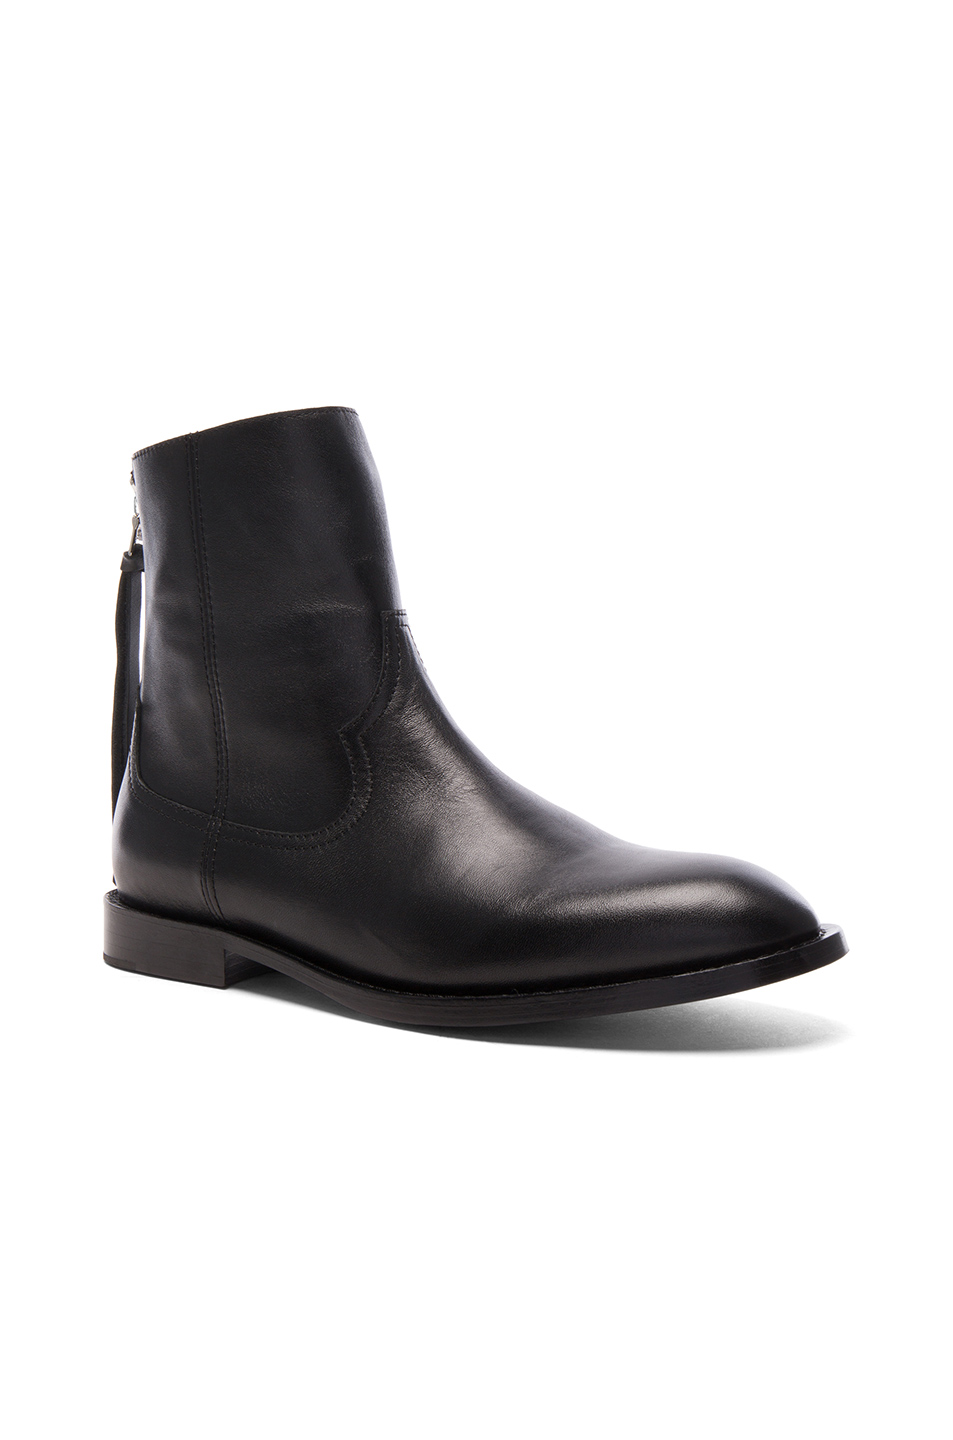 Amiri Leather Shane Boots in Black